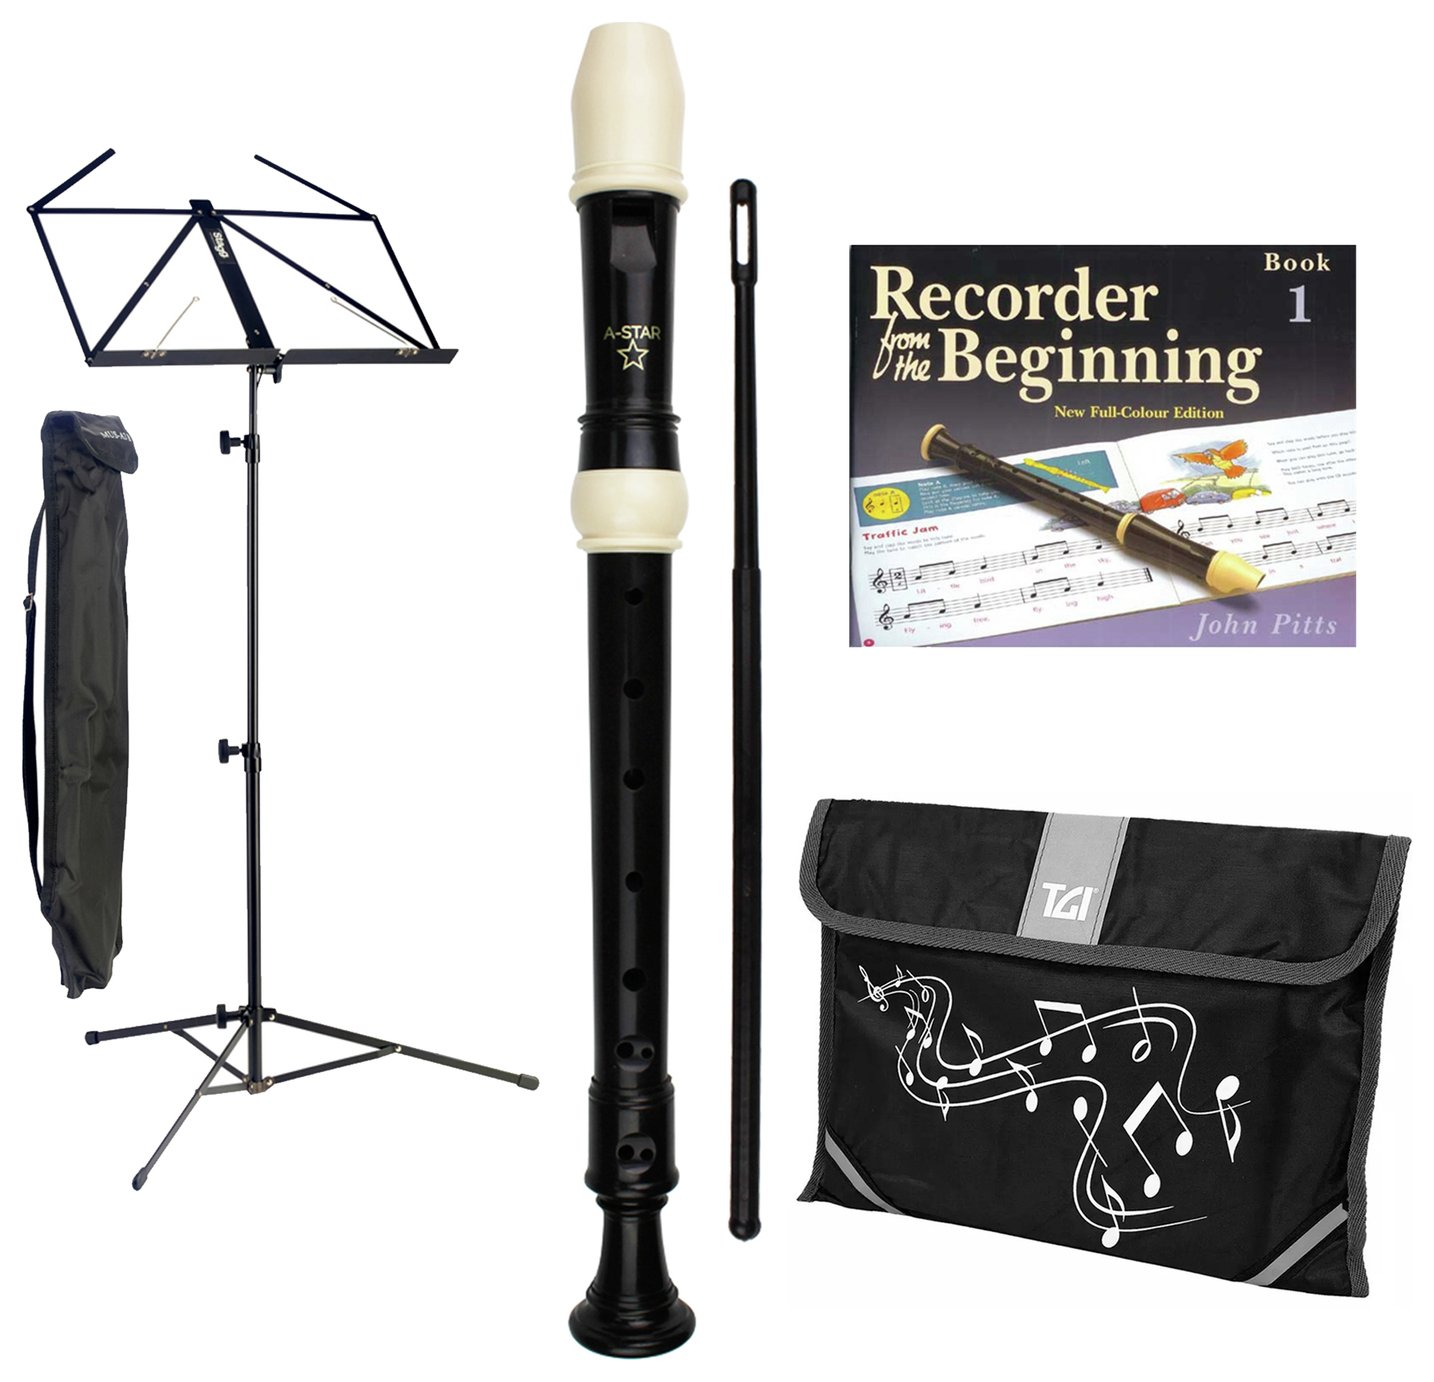 A-Star Recorder and Accessories Starter Bundle